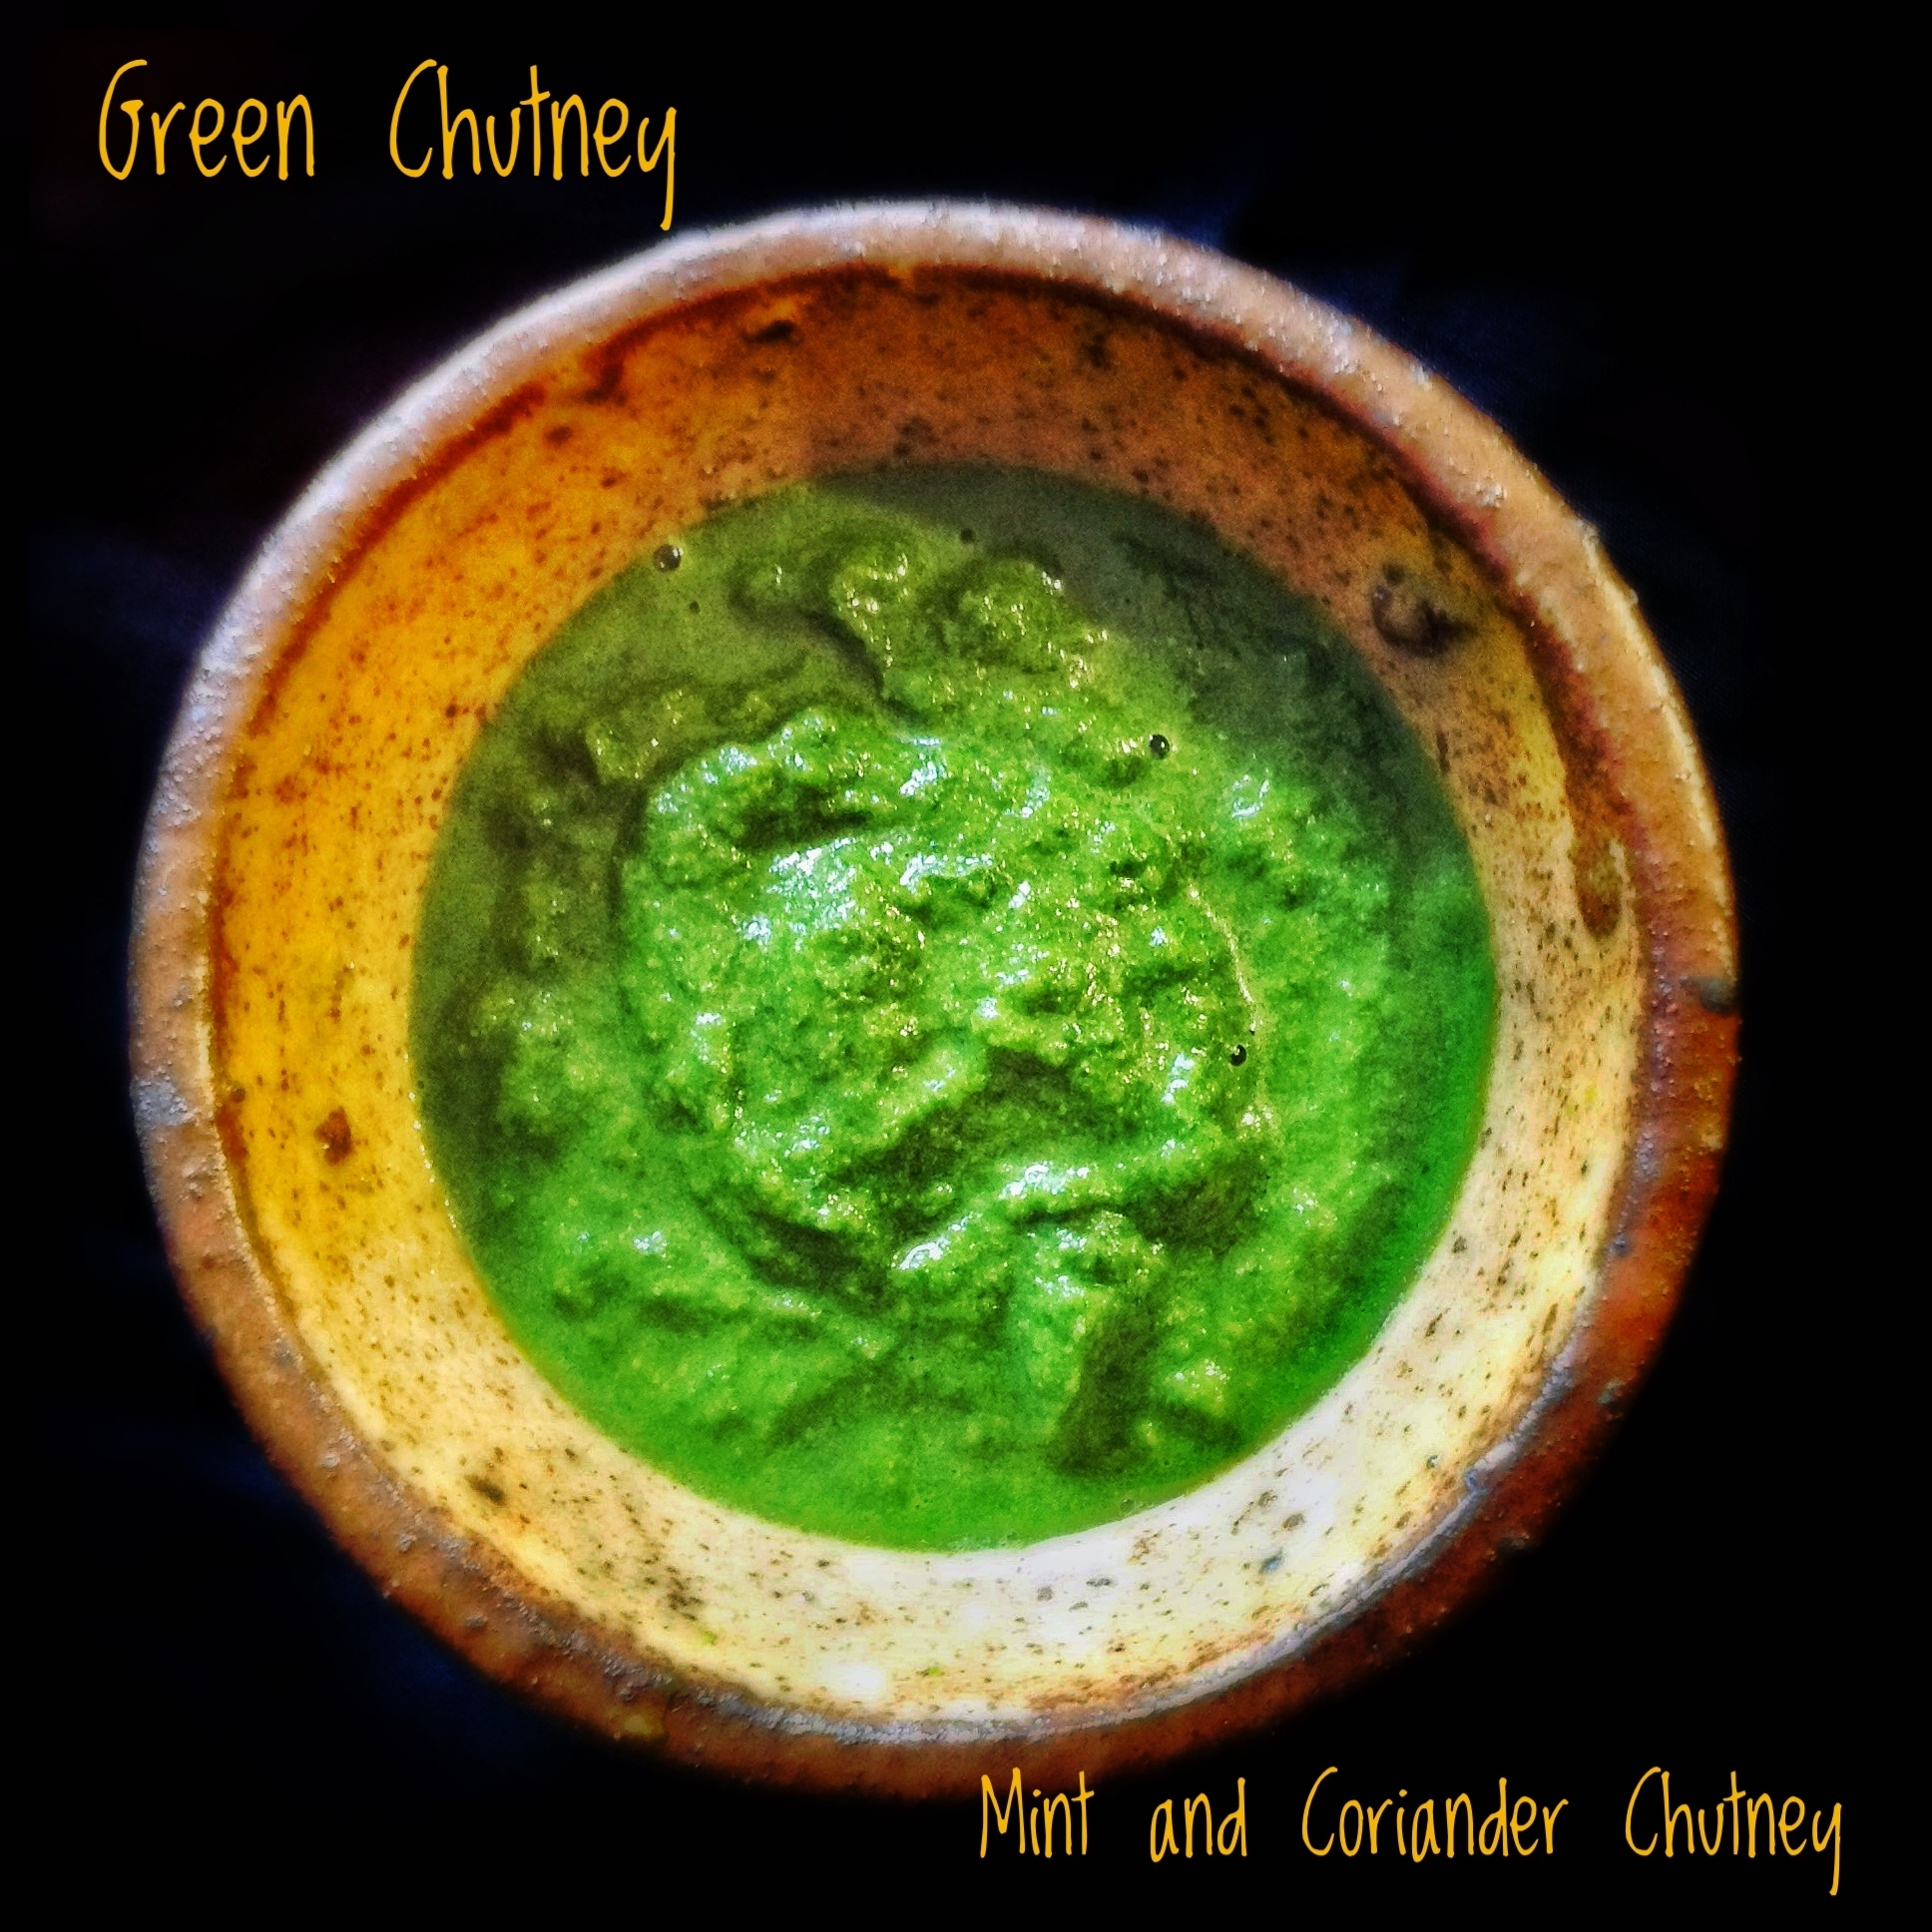 Green Chutney | Indian Mint and Coriander Chutney